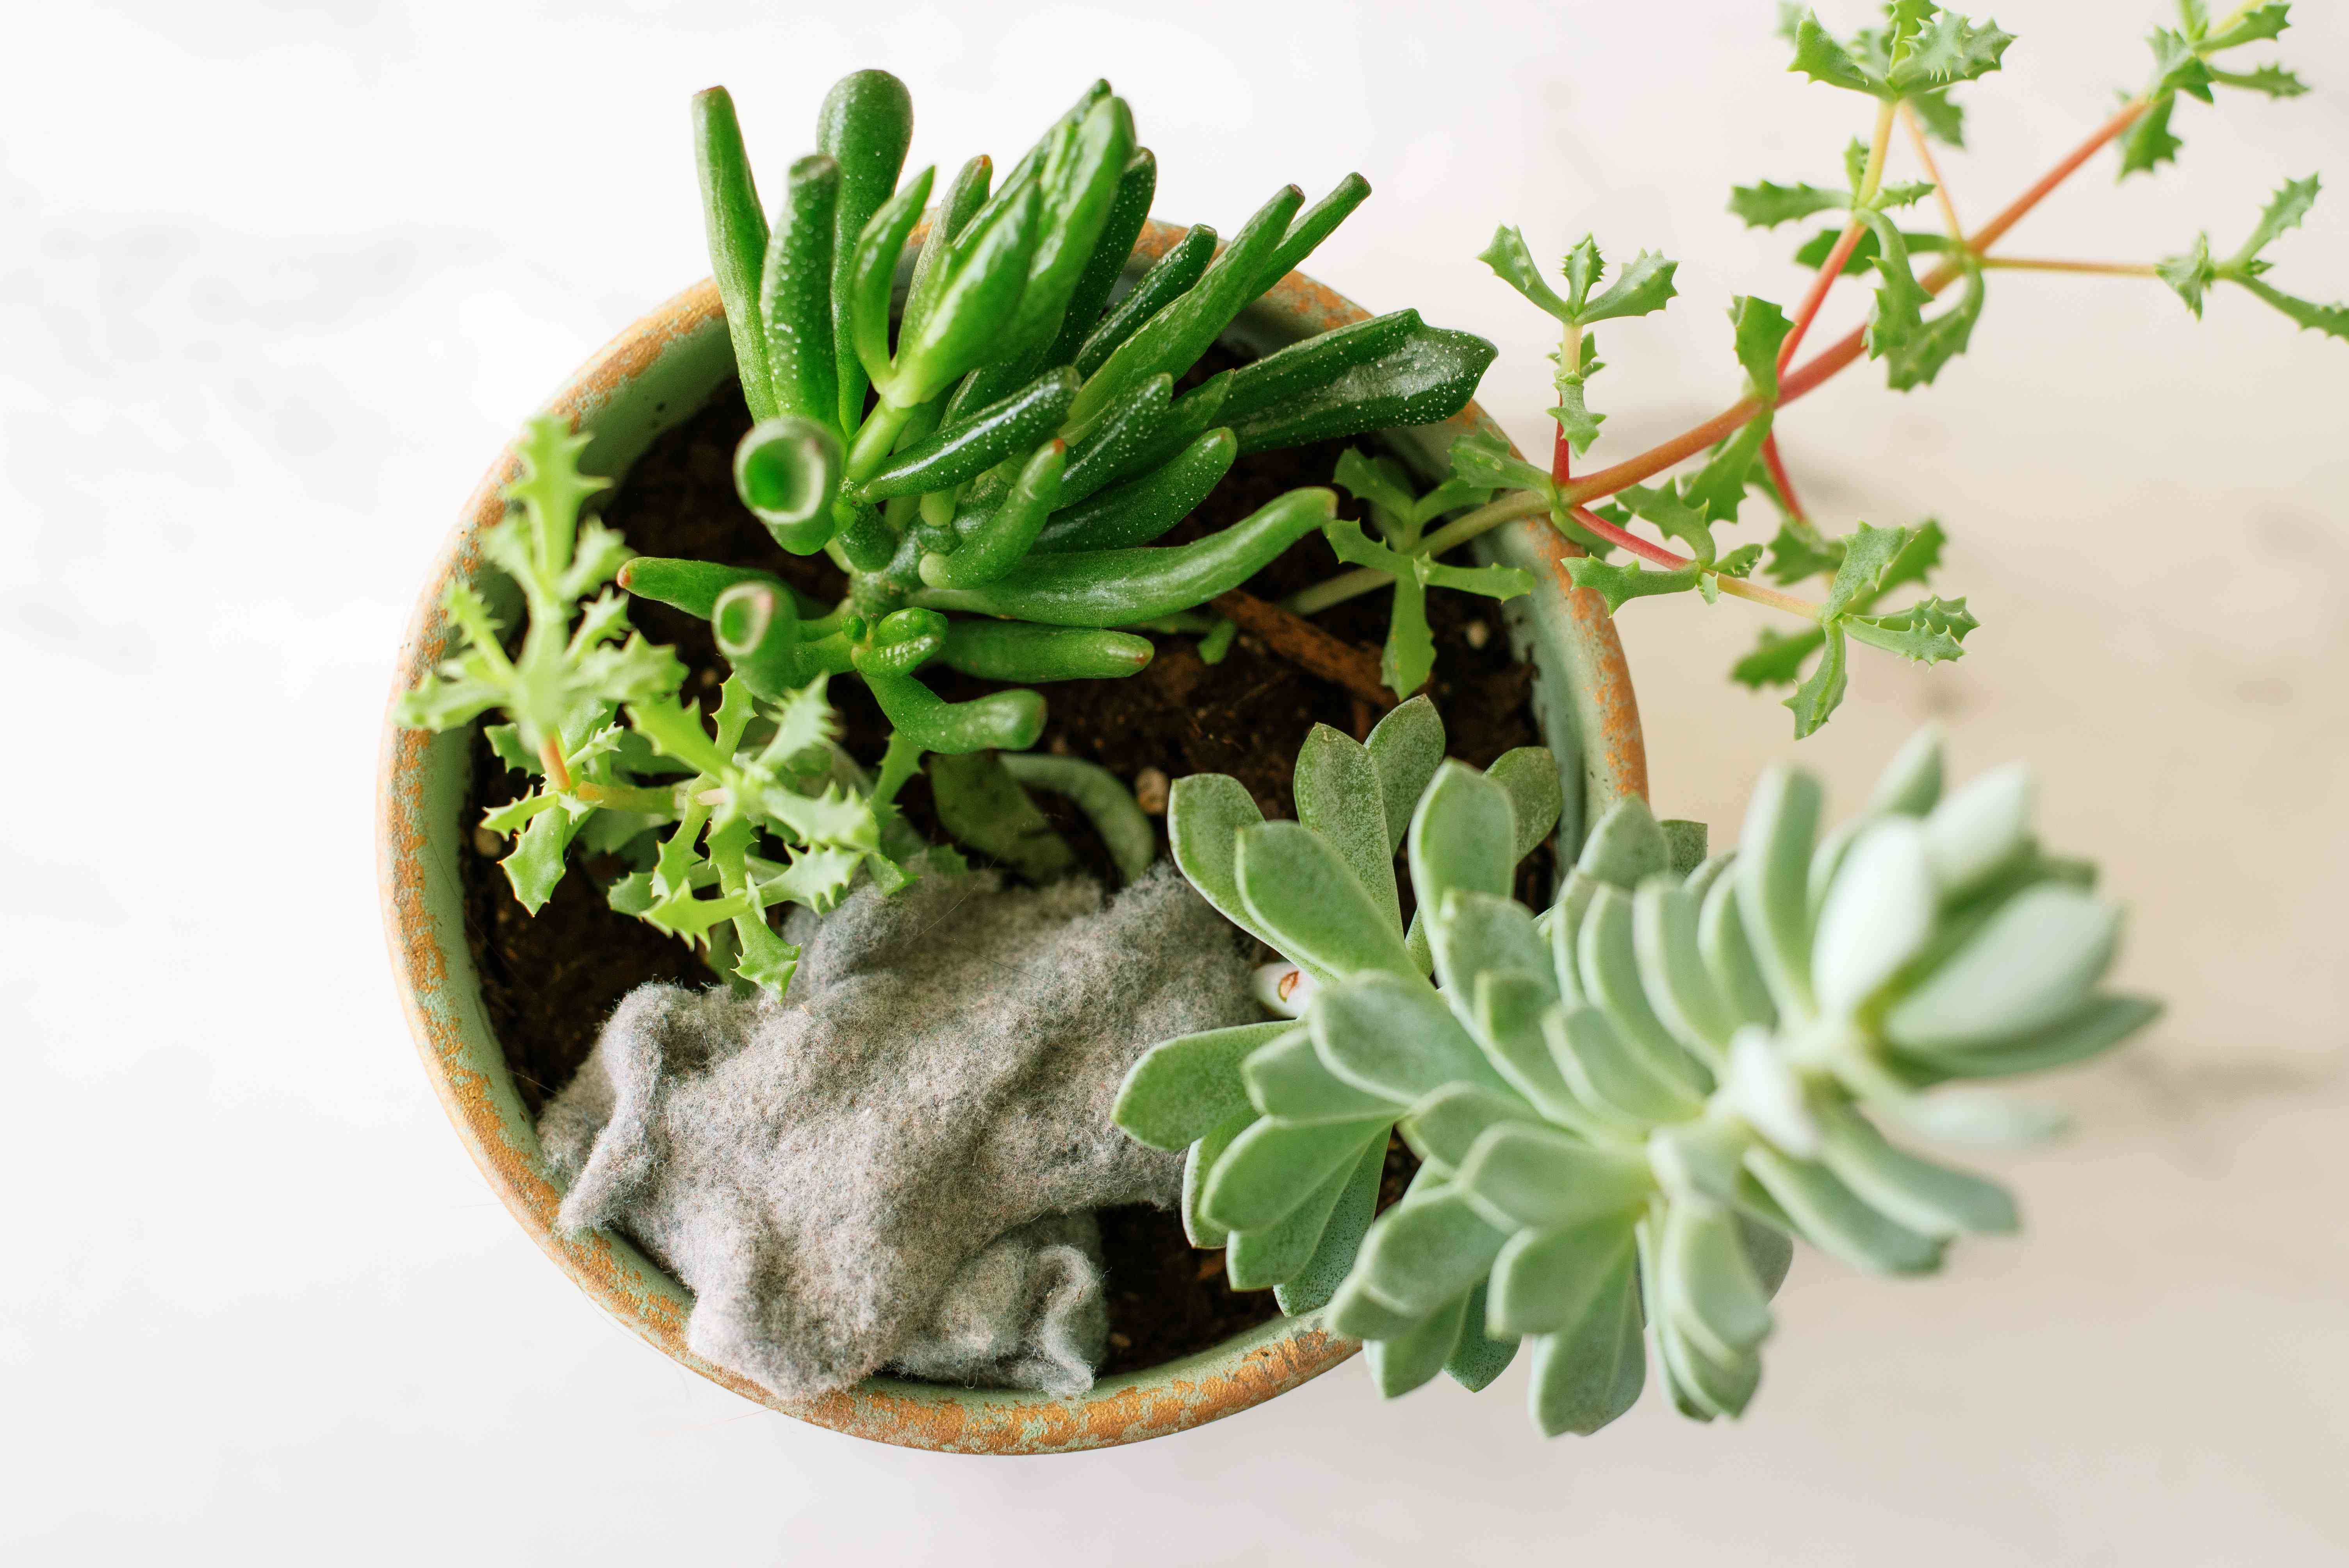 Dryer lint added to potted succulent plants as compost